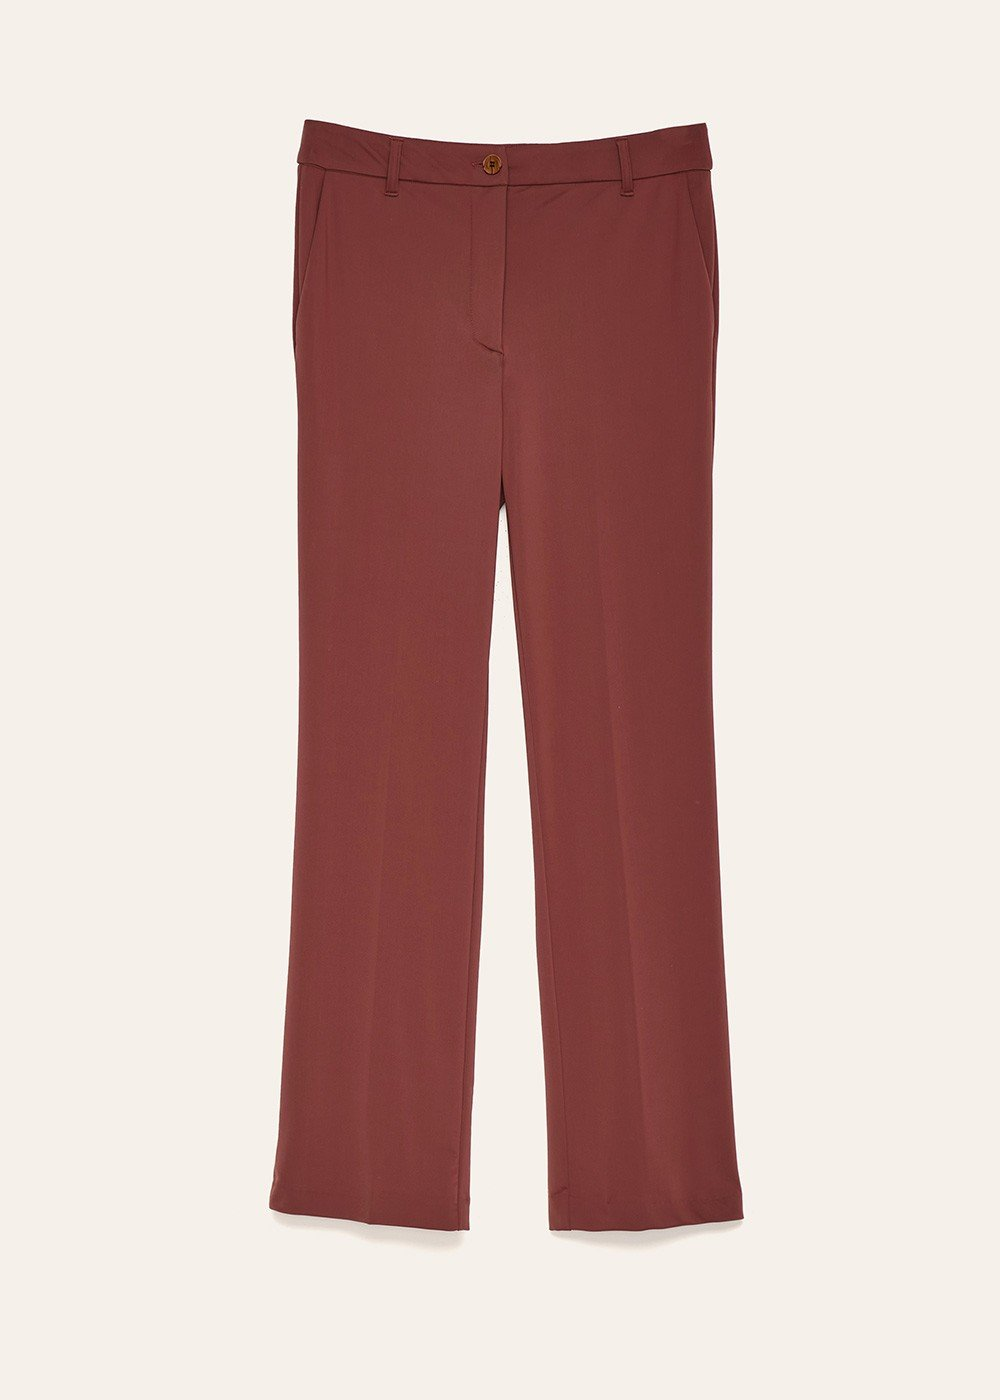 Jacquelic trousers in technical fabric - Land - Woman